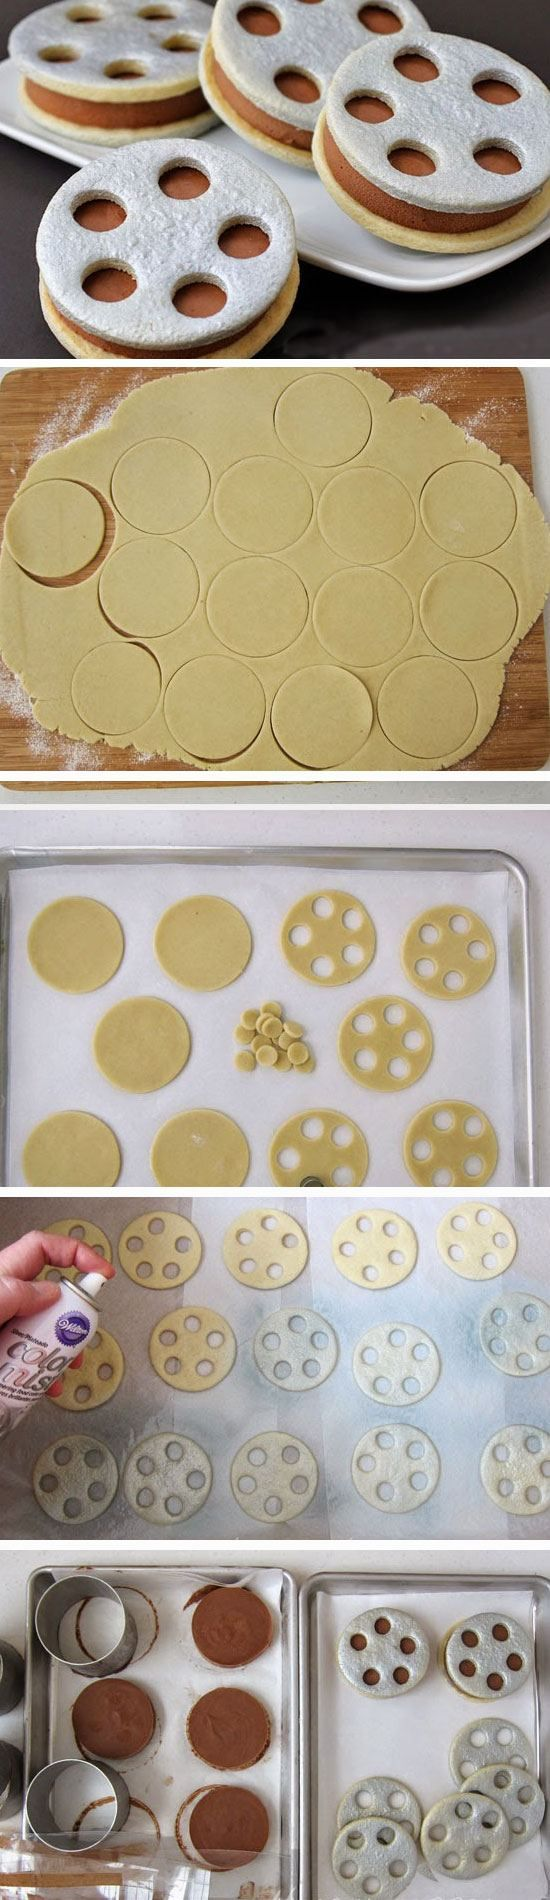 Film Reel Ice Cream Sandwiches | 19 DIY Movie Night Ideas for Teens that will get the party started!